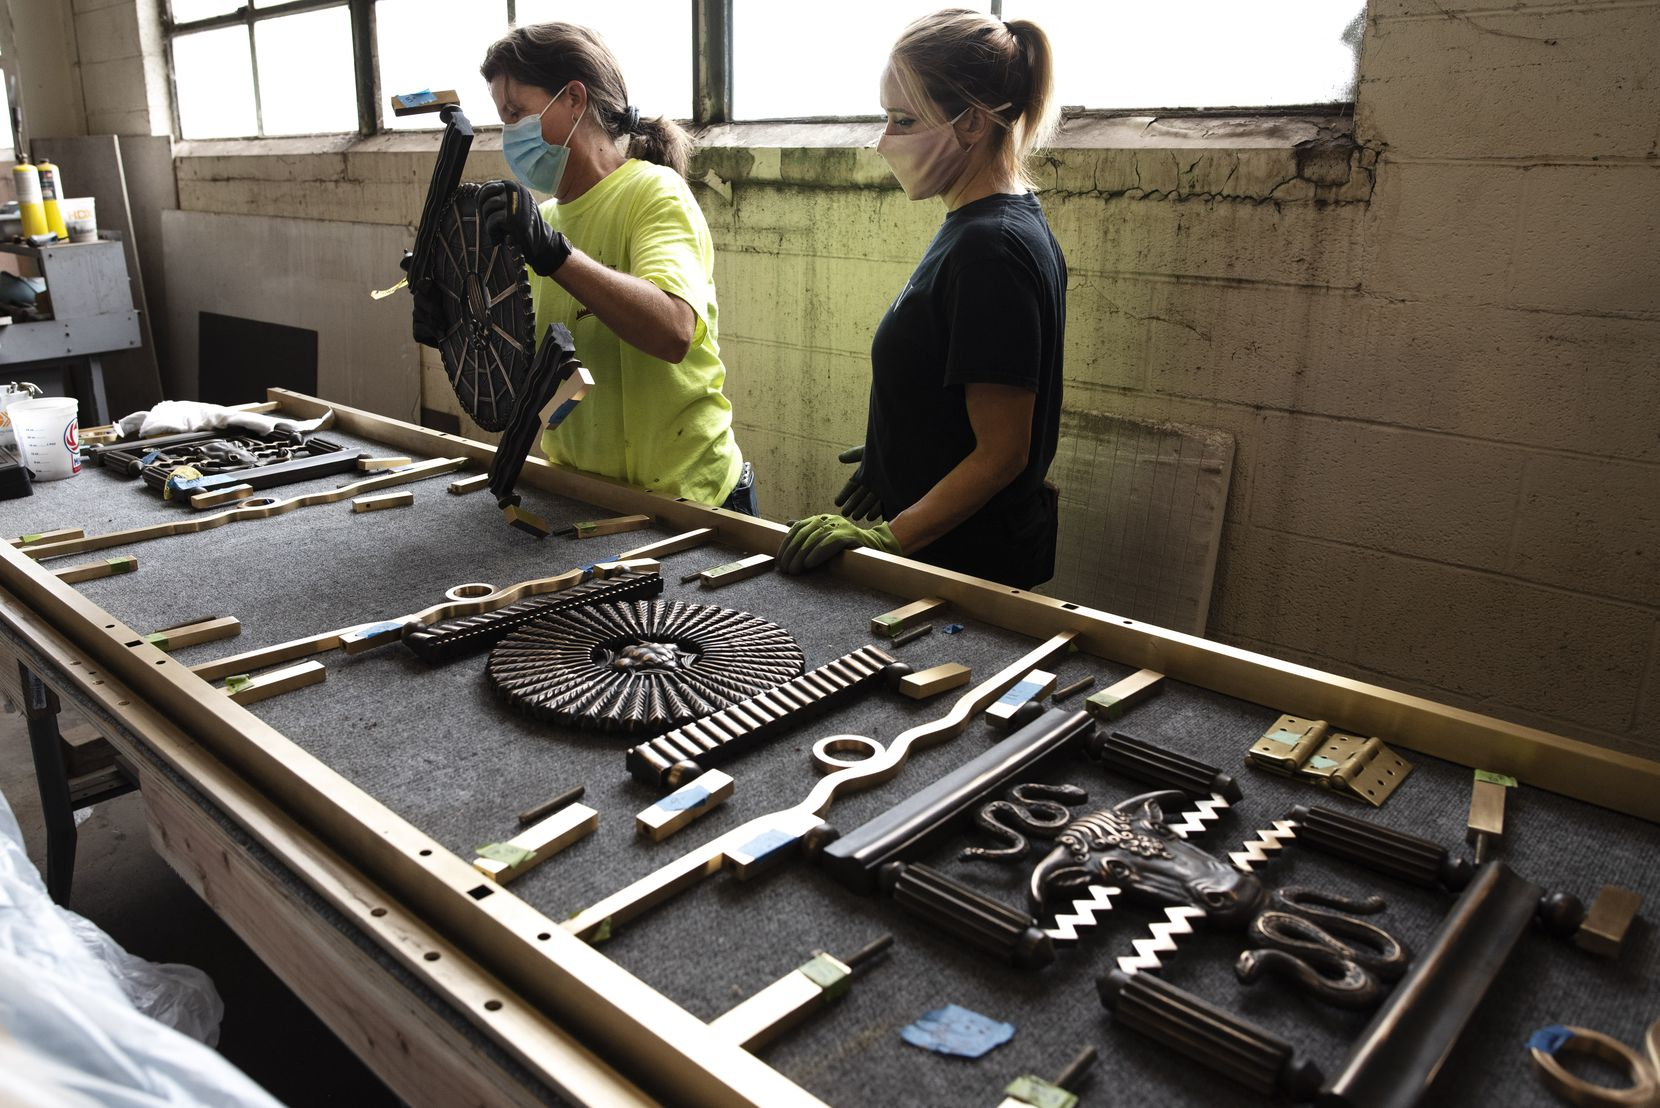 Restoration technicians Allison Savage (left) and Jessica Thomas work on pieces of bronze artwork that are part of the Hall of State's decorative door grilles.